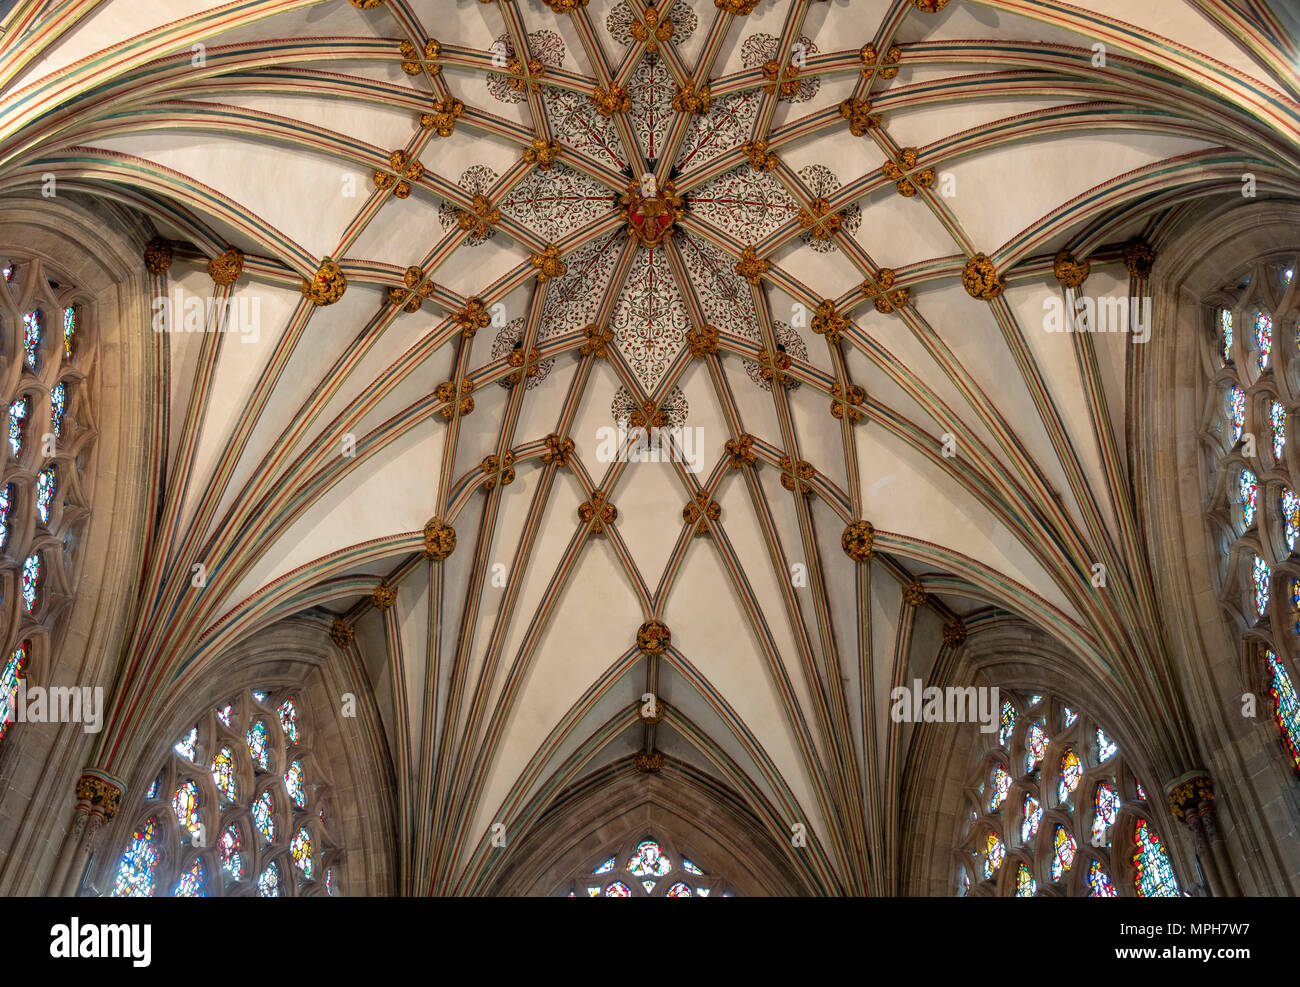 Wells, Cathedral, Marienkapelle (Lady Chapel), Gewölbe - Stock Image